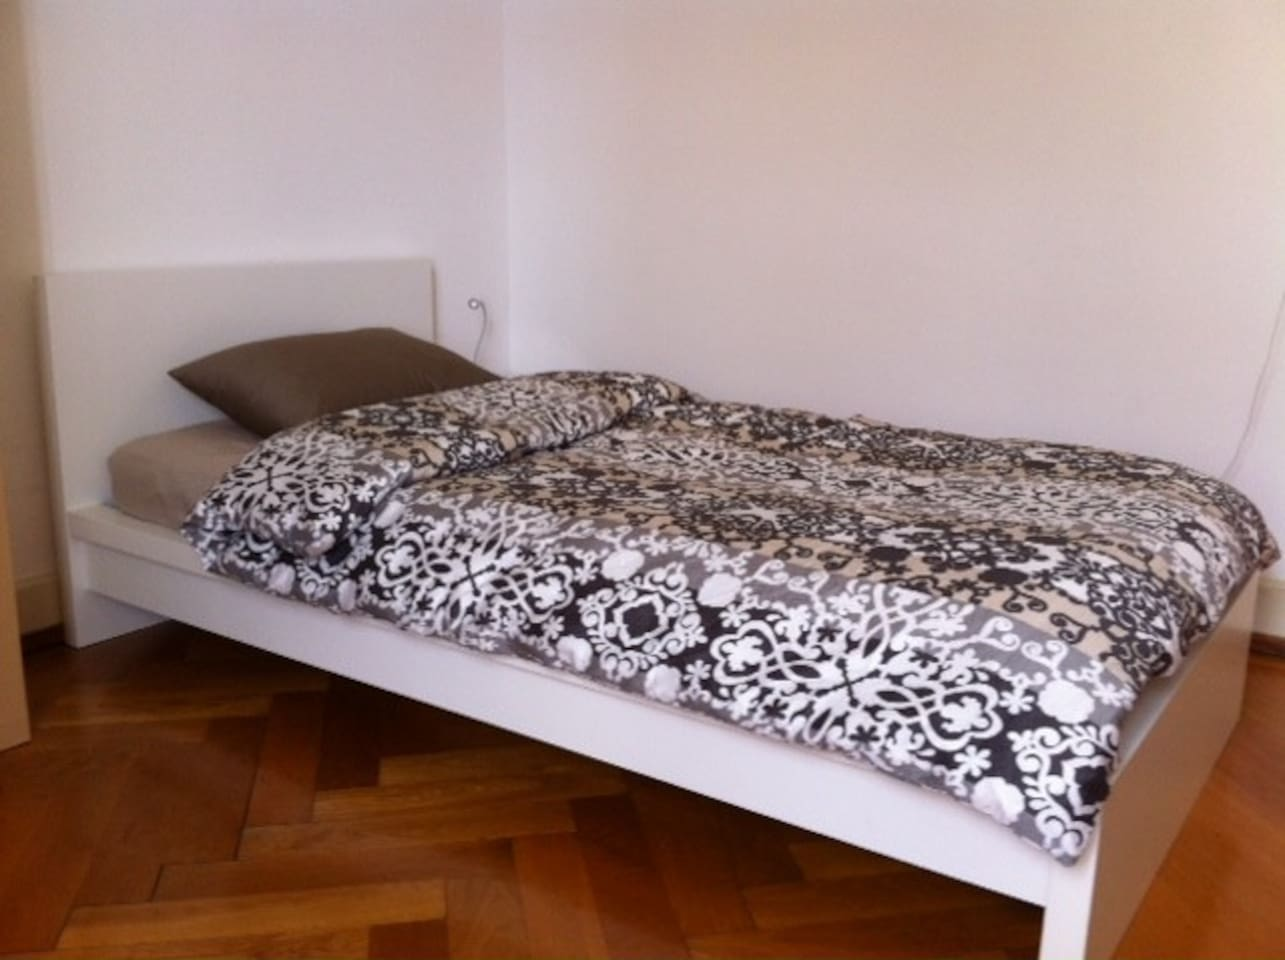 Comfortable warm bed for one person. Mattress on the floor available for a second person, 30.- euros/night